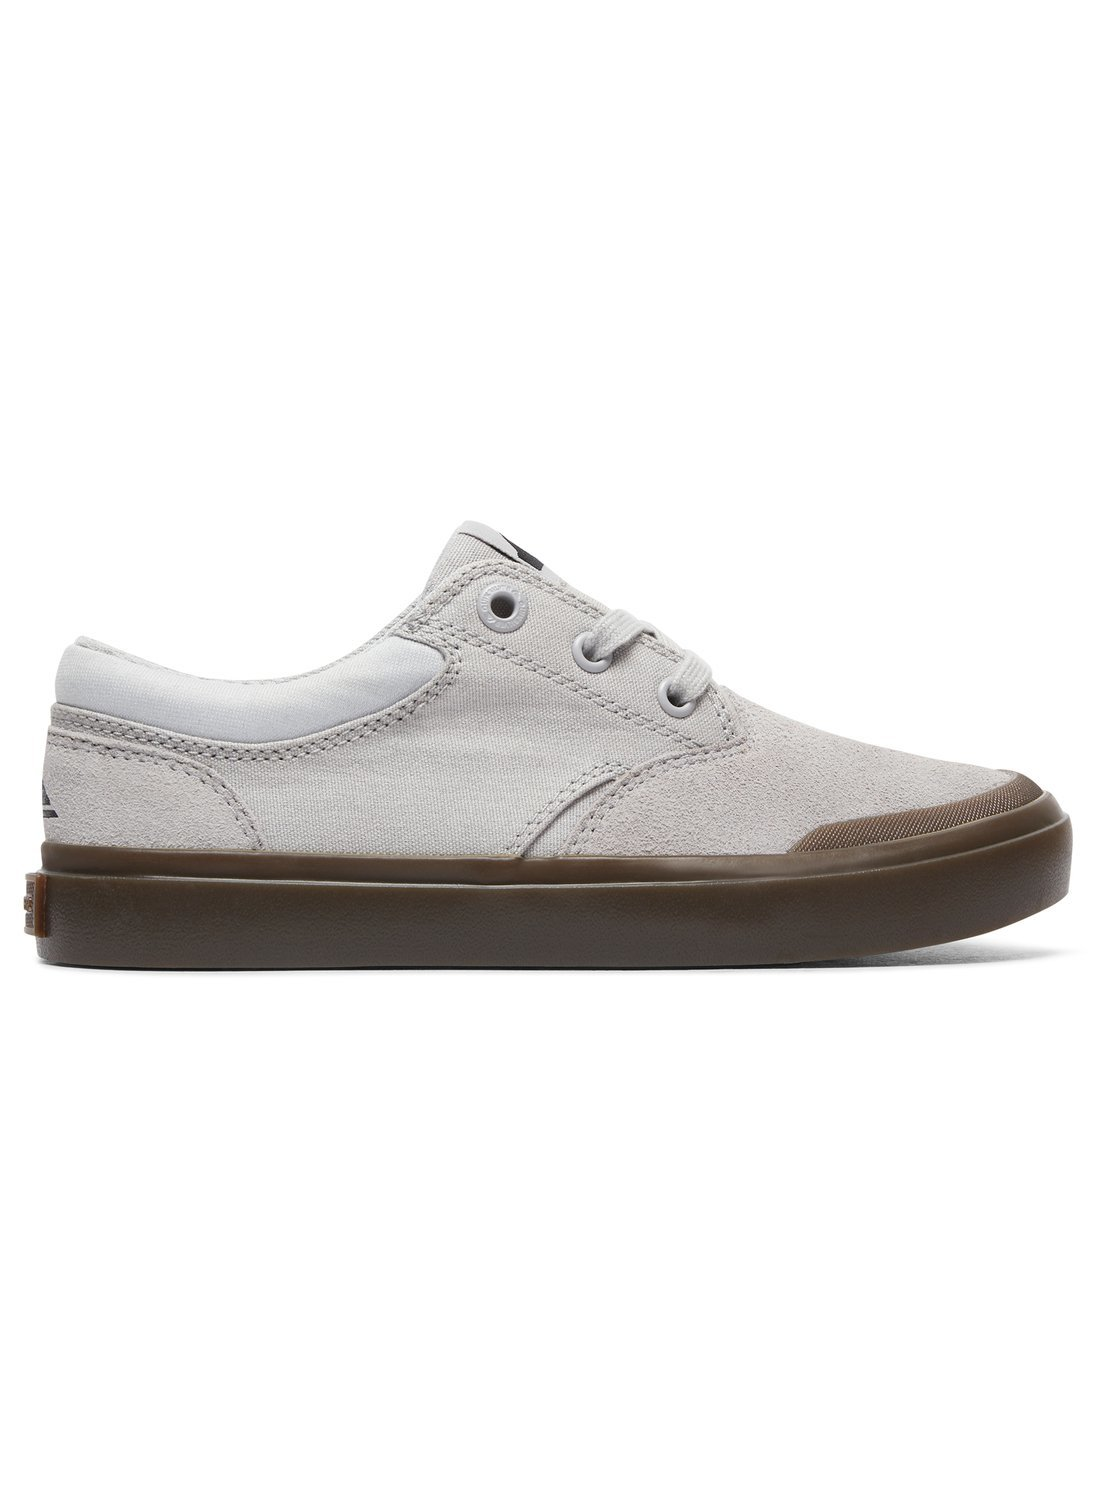 Кеды дет. QUIKSILVER VERANT YOUTH B SHOE XWWC WHITE/WHITE/BROWN